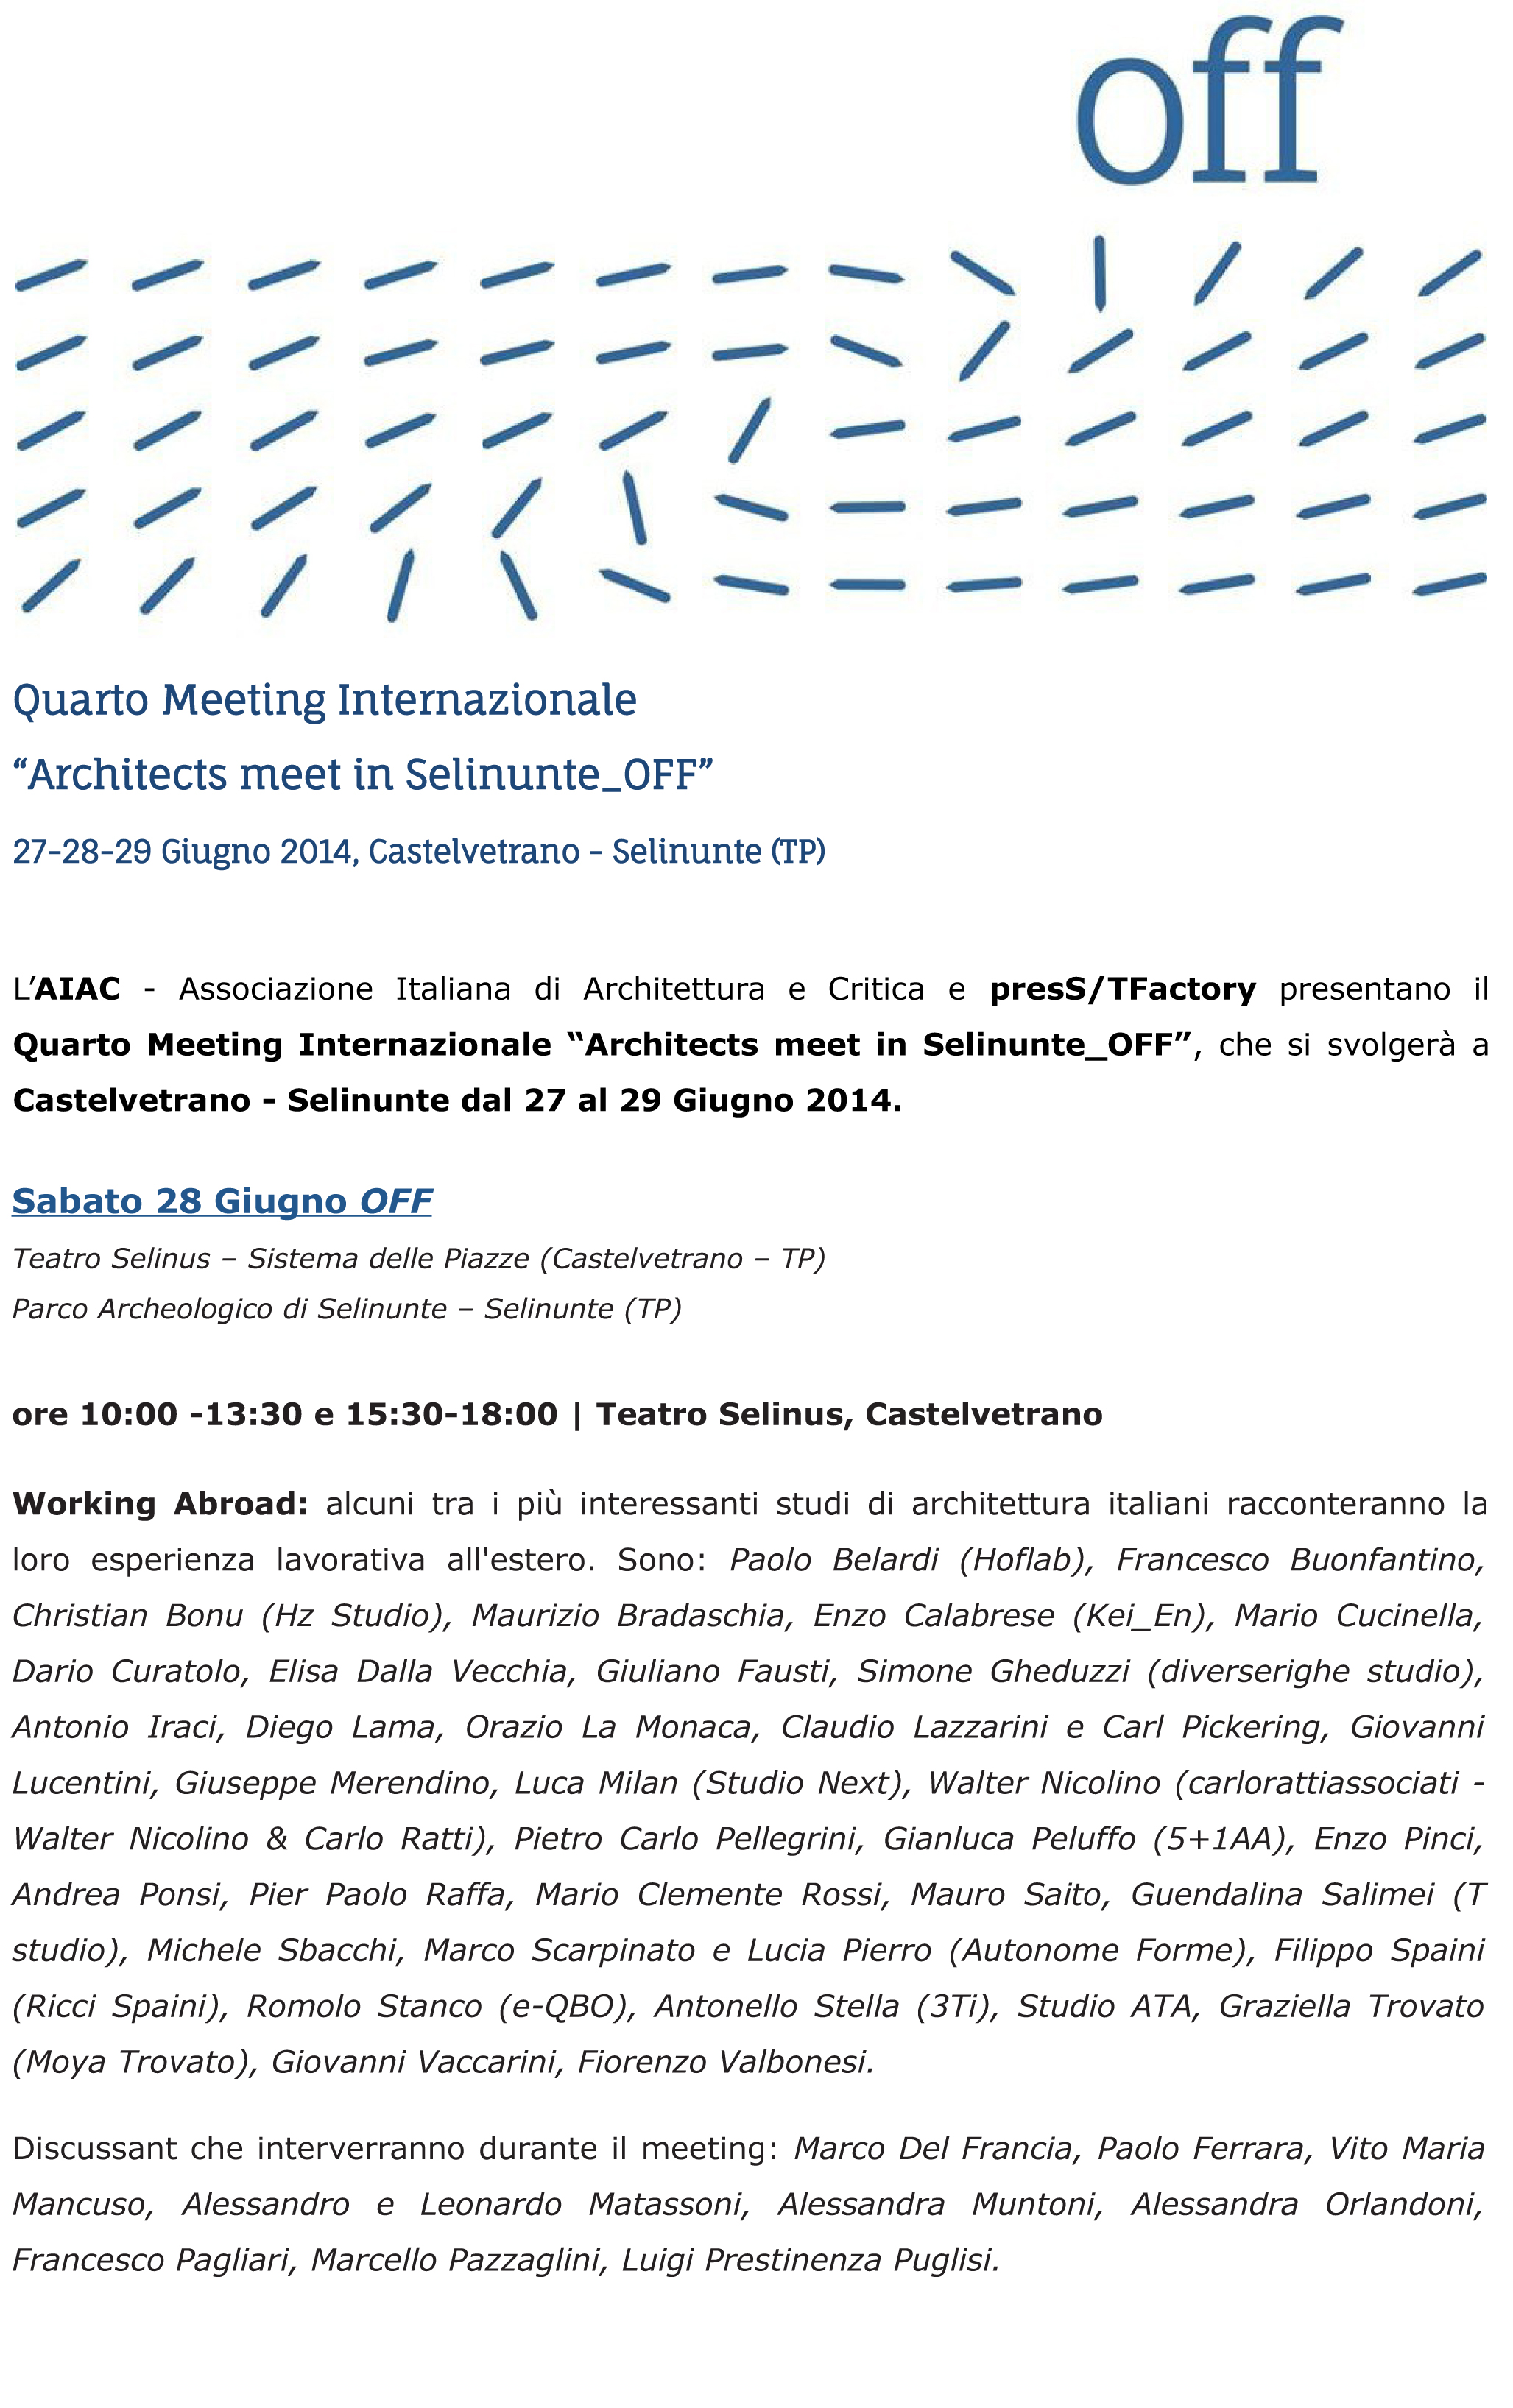 sito_ARCHITECTS MEET IN SELINUNTE_OFF programma